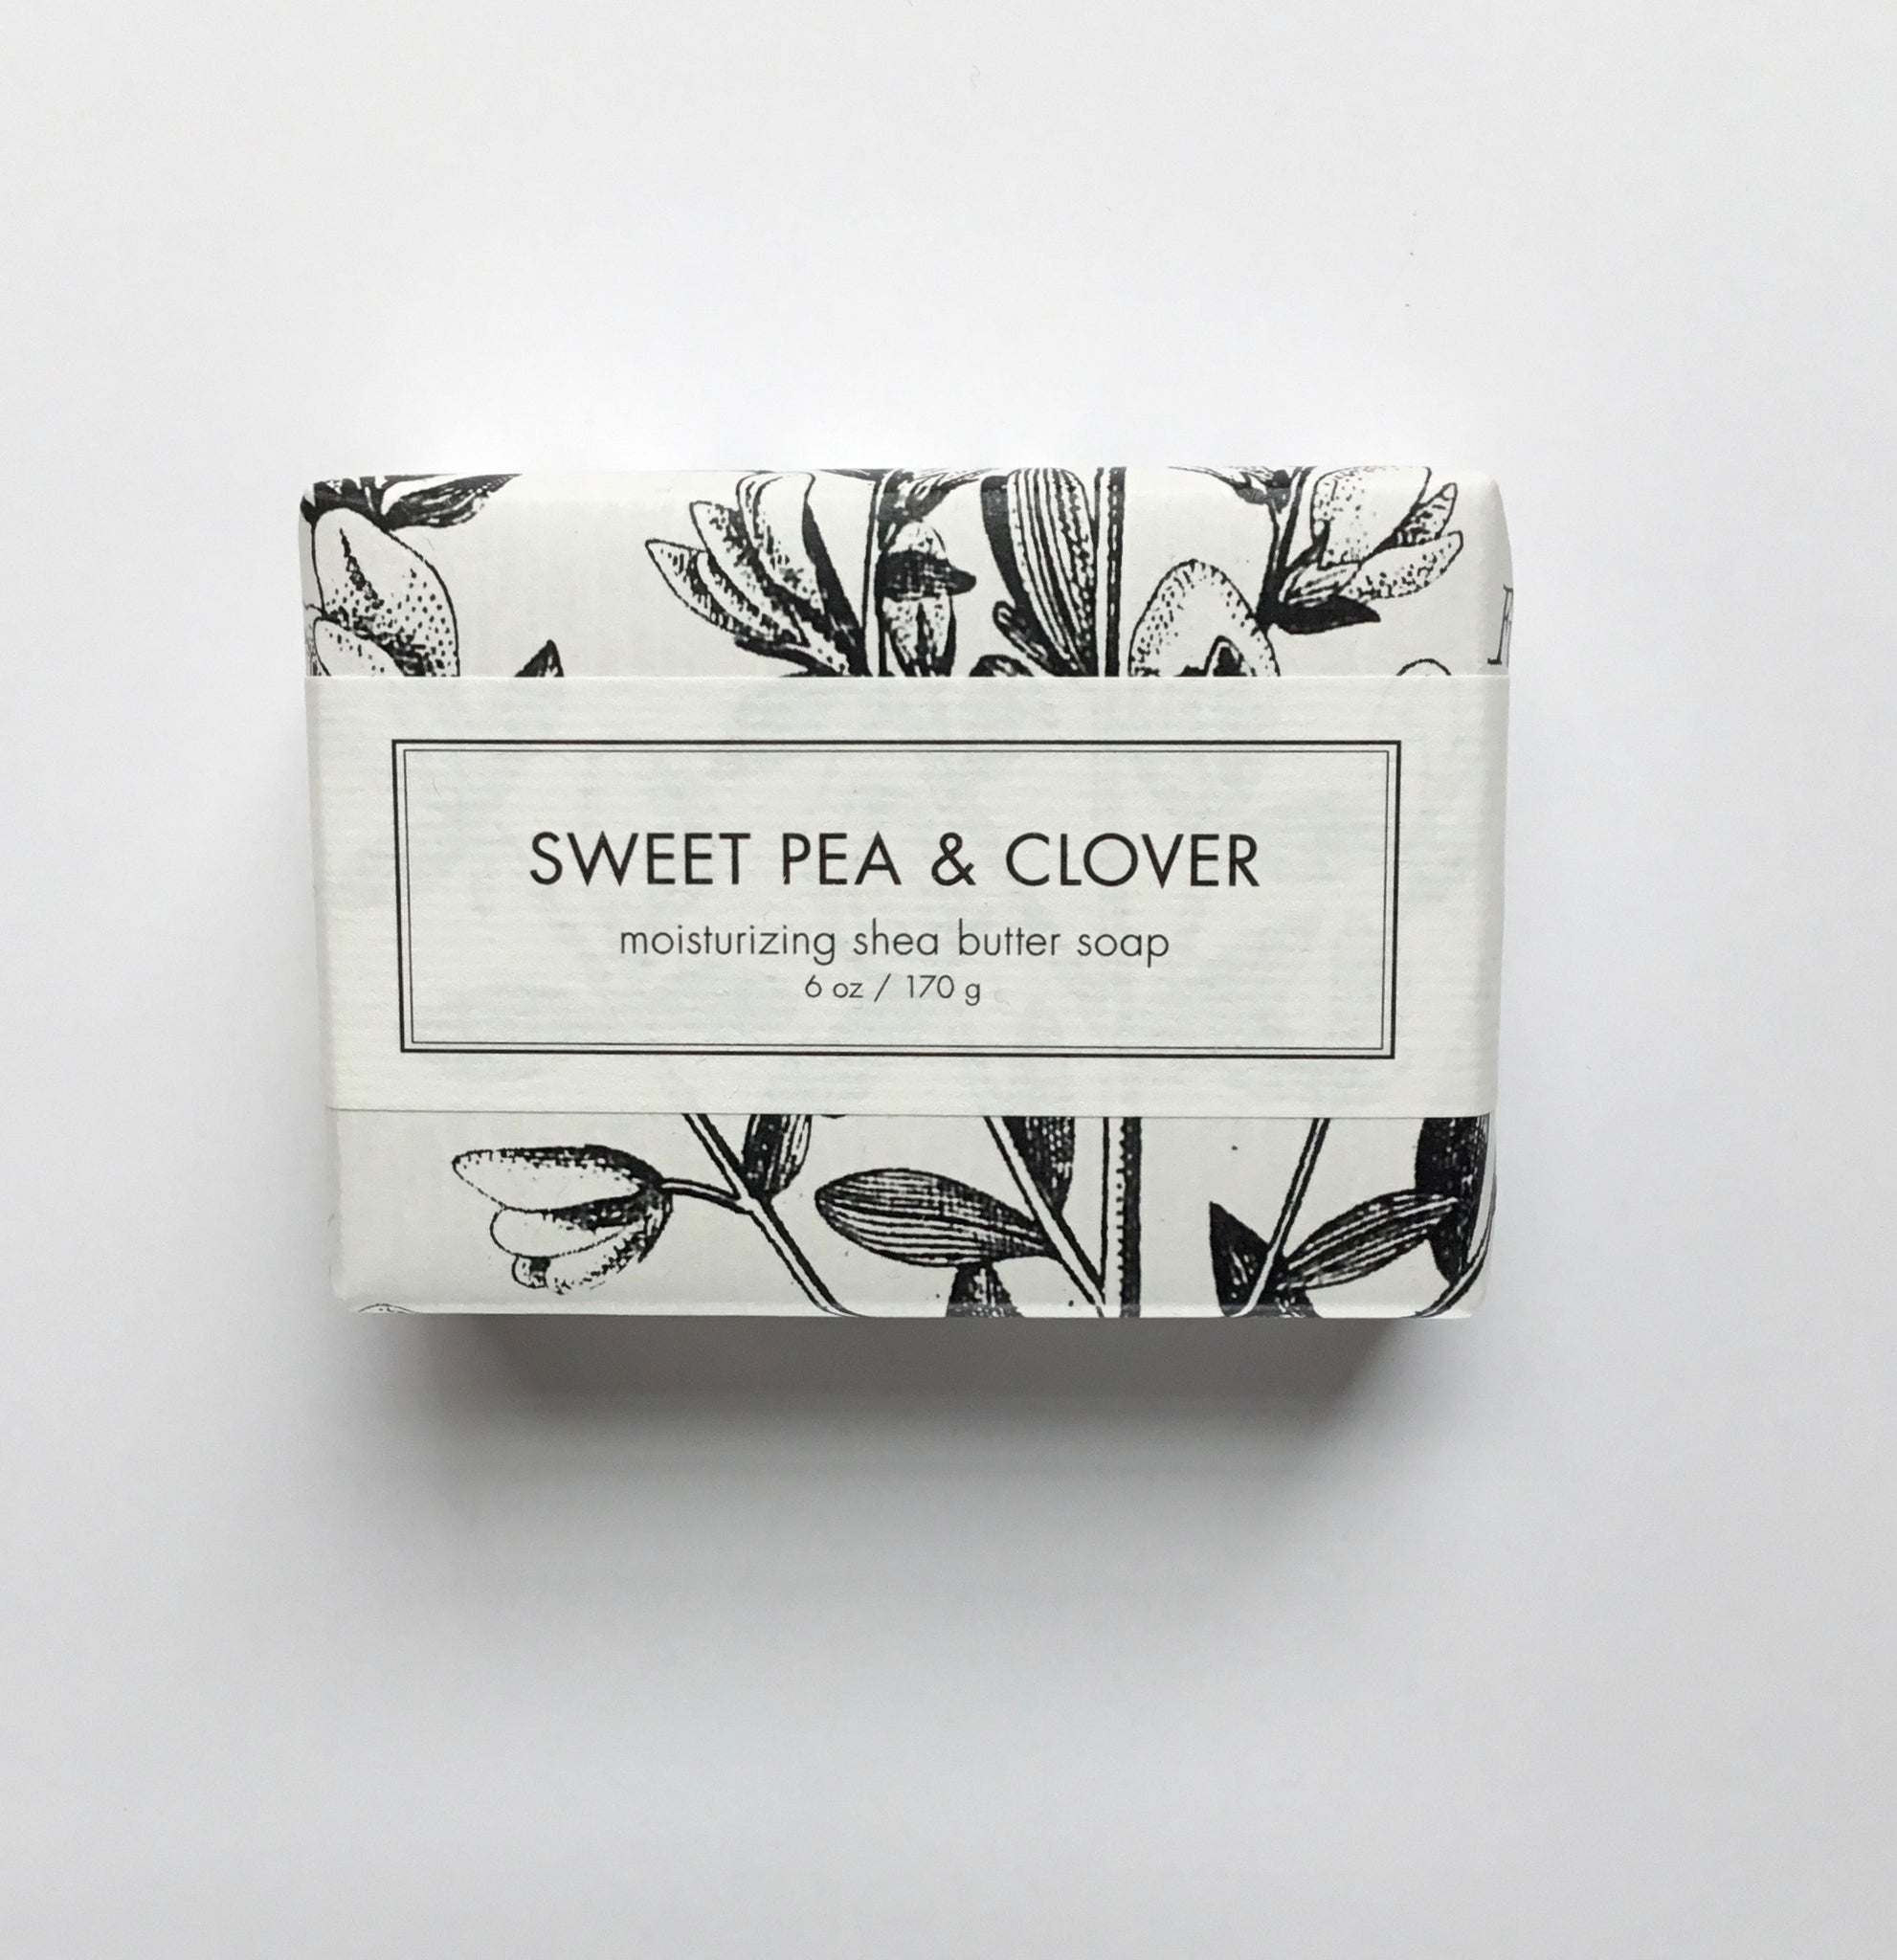 Formulary 55 Sweet Pea and Clover Shea Butter Soap